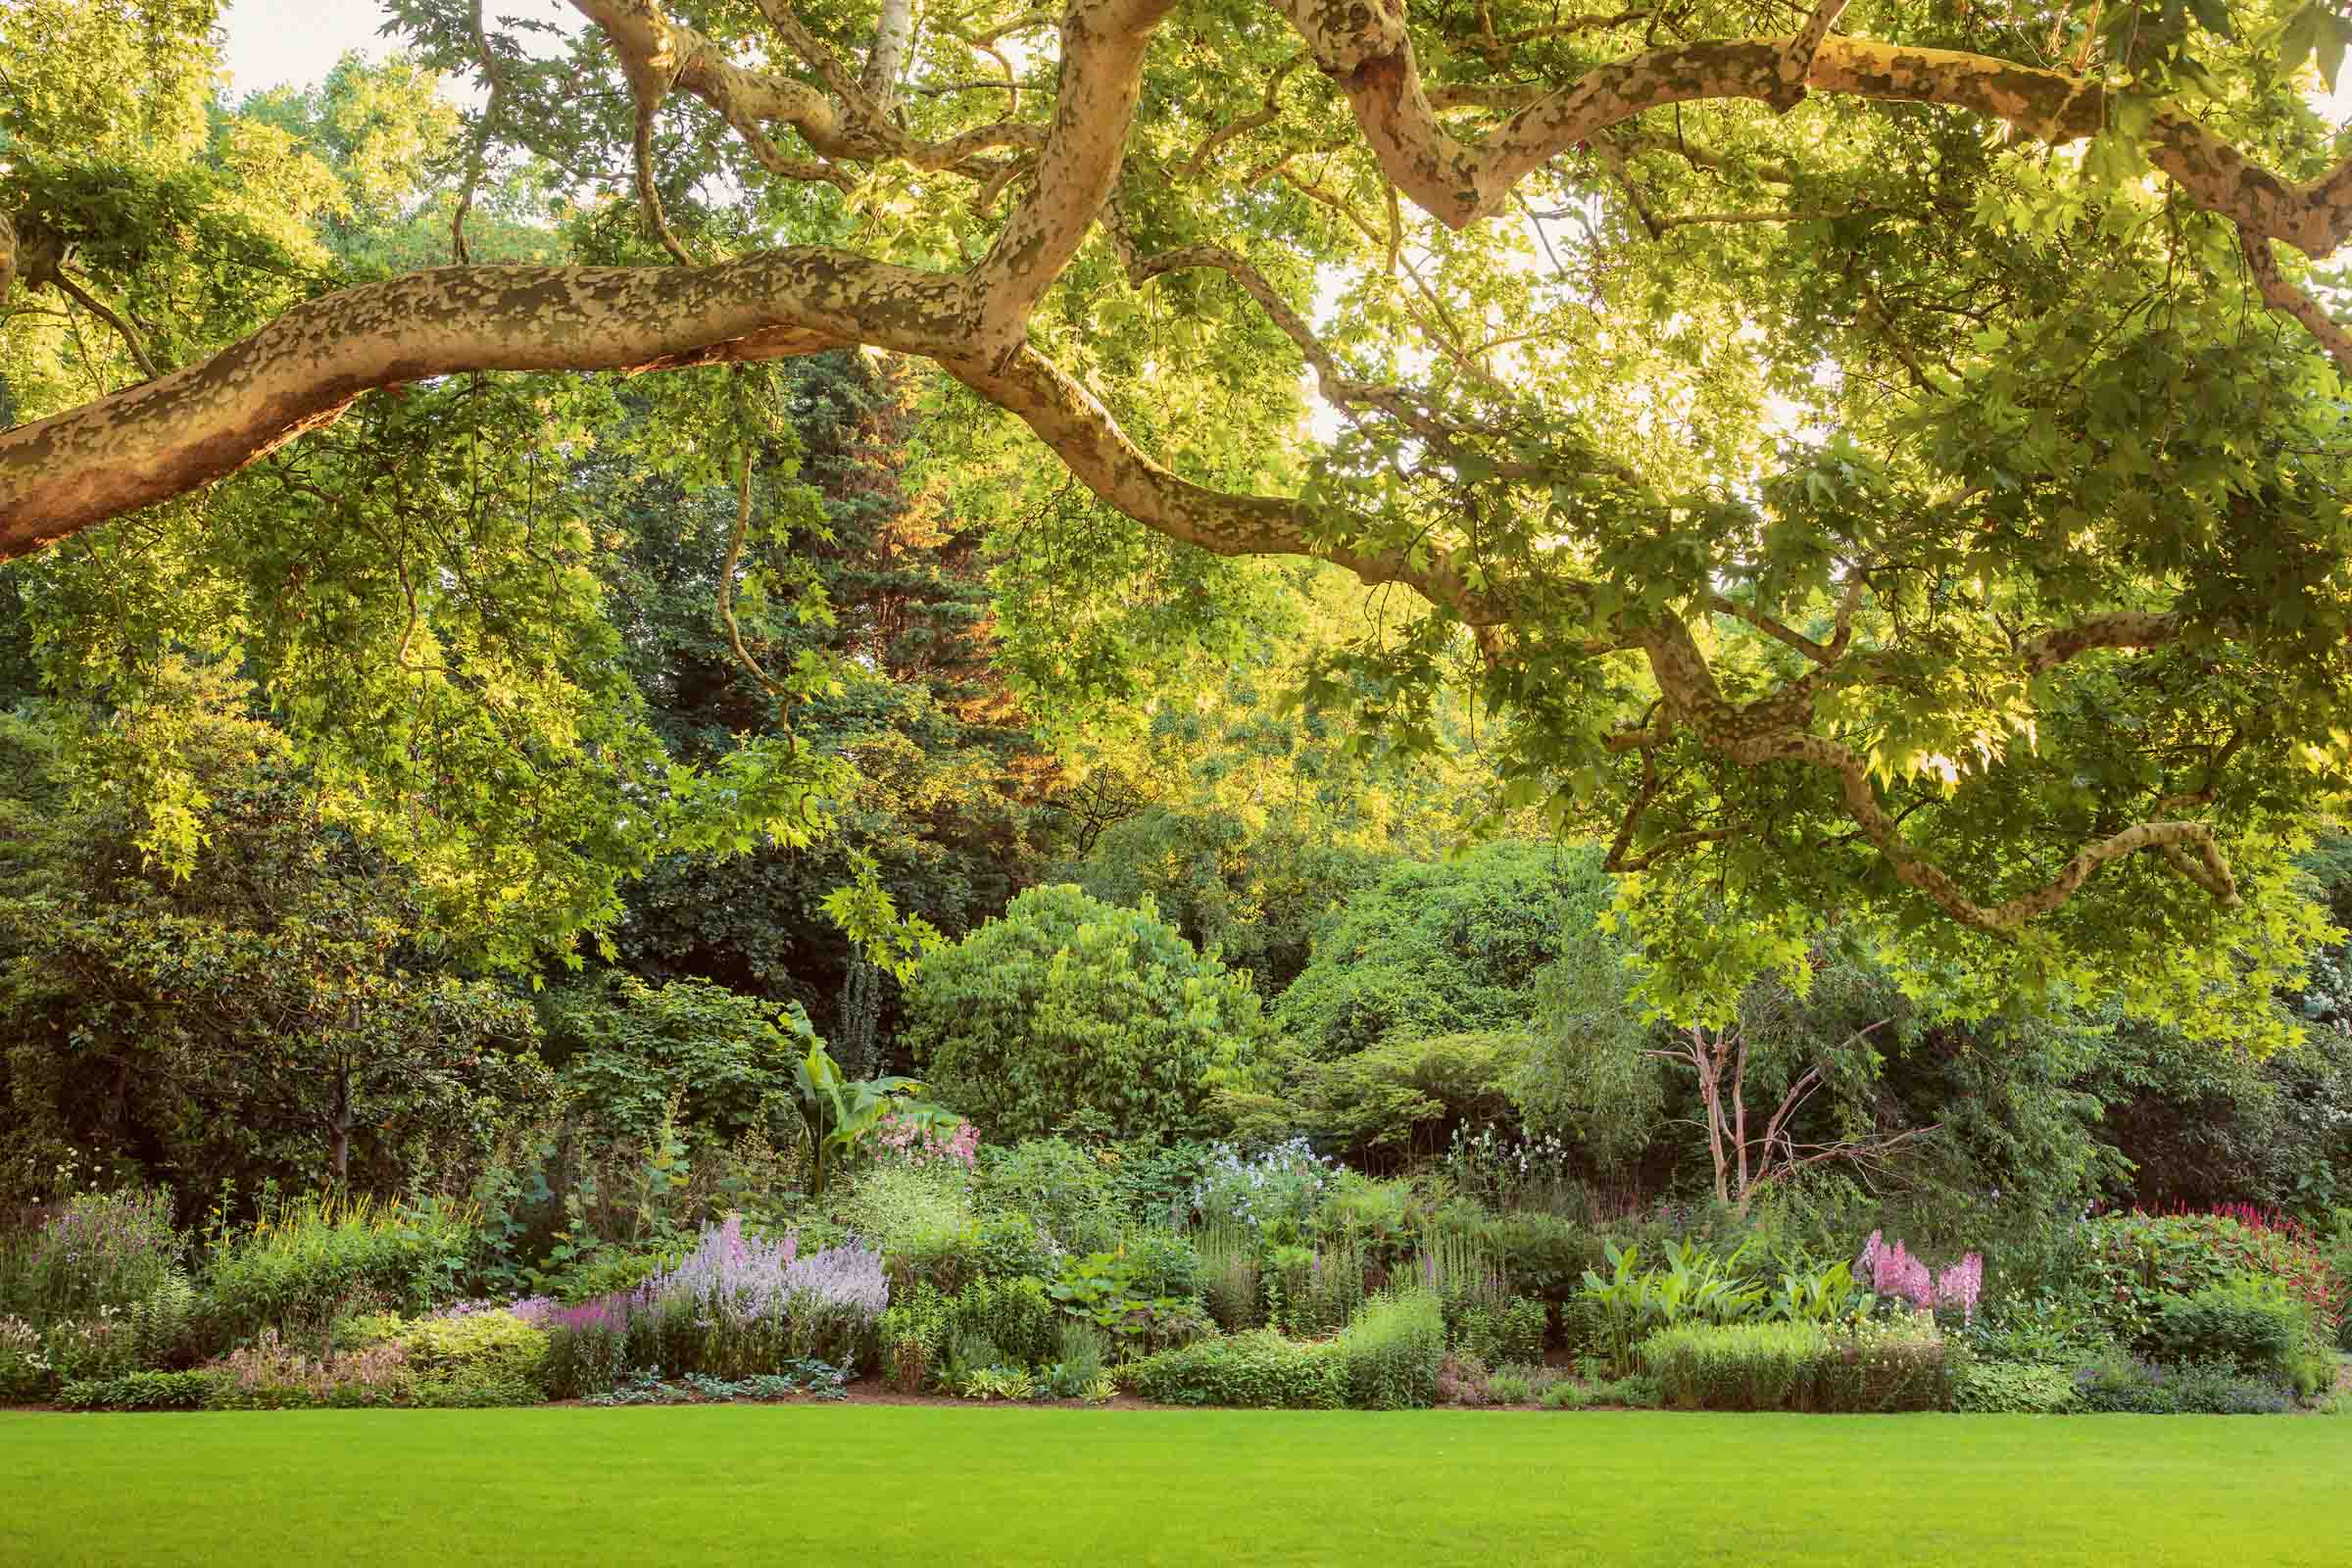 A striking 156-meter Herbaceous Border can be viewed within the gardens.